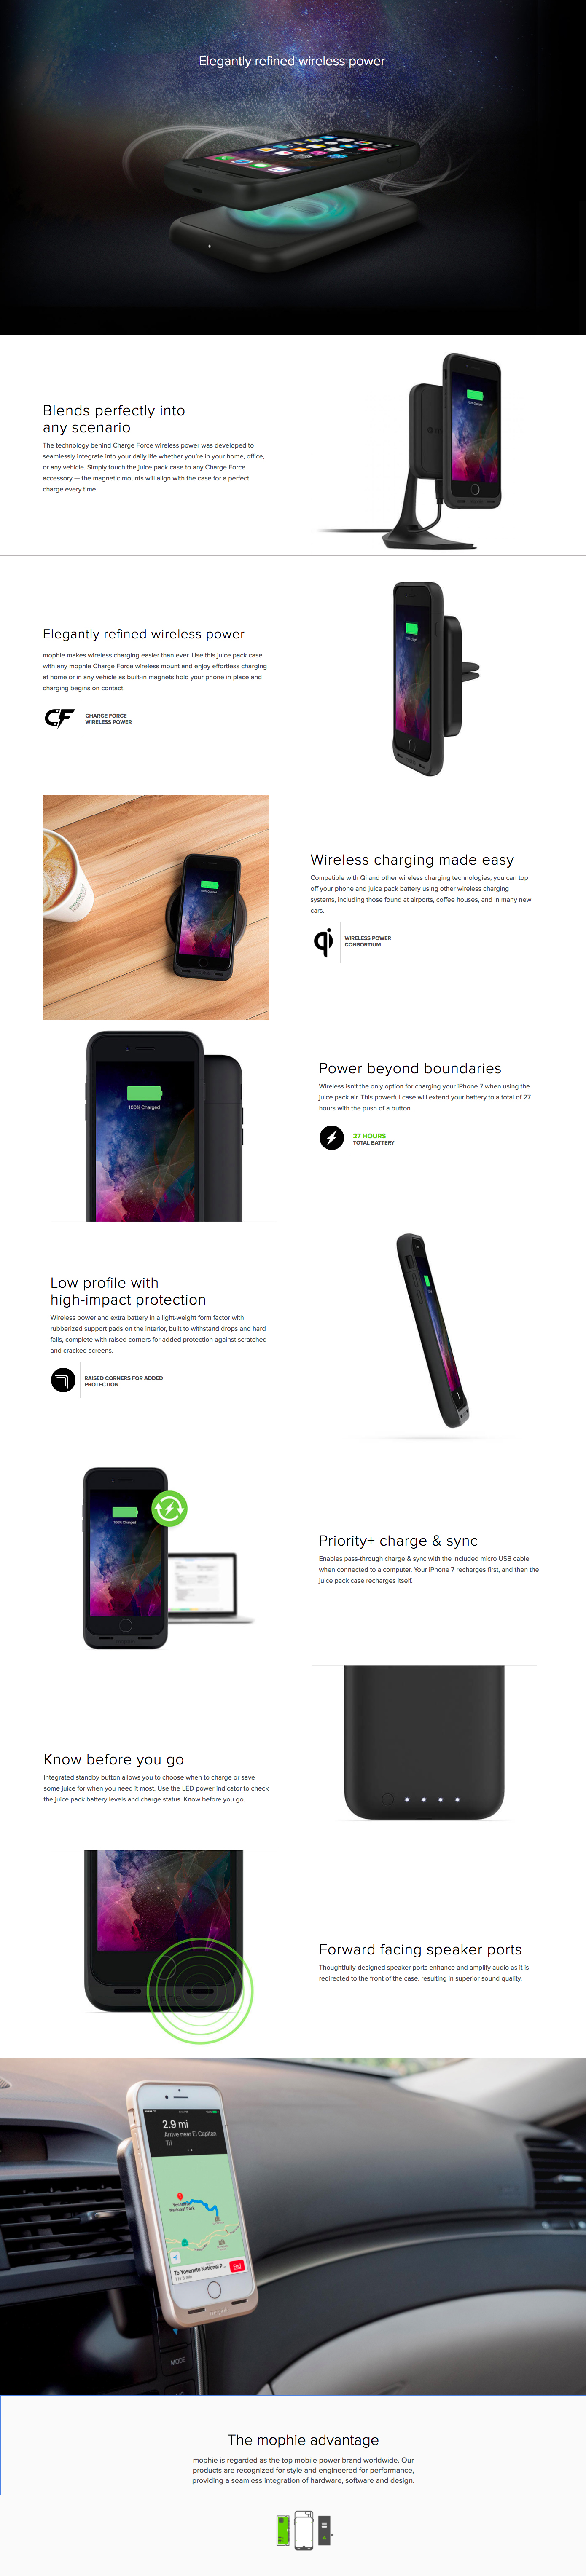 mophie-juice-pack-air-iphone-7-wireless-capable-malaysia-unit-overview